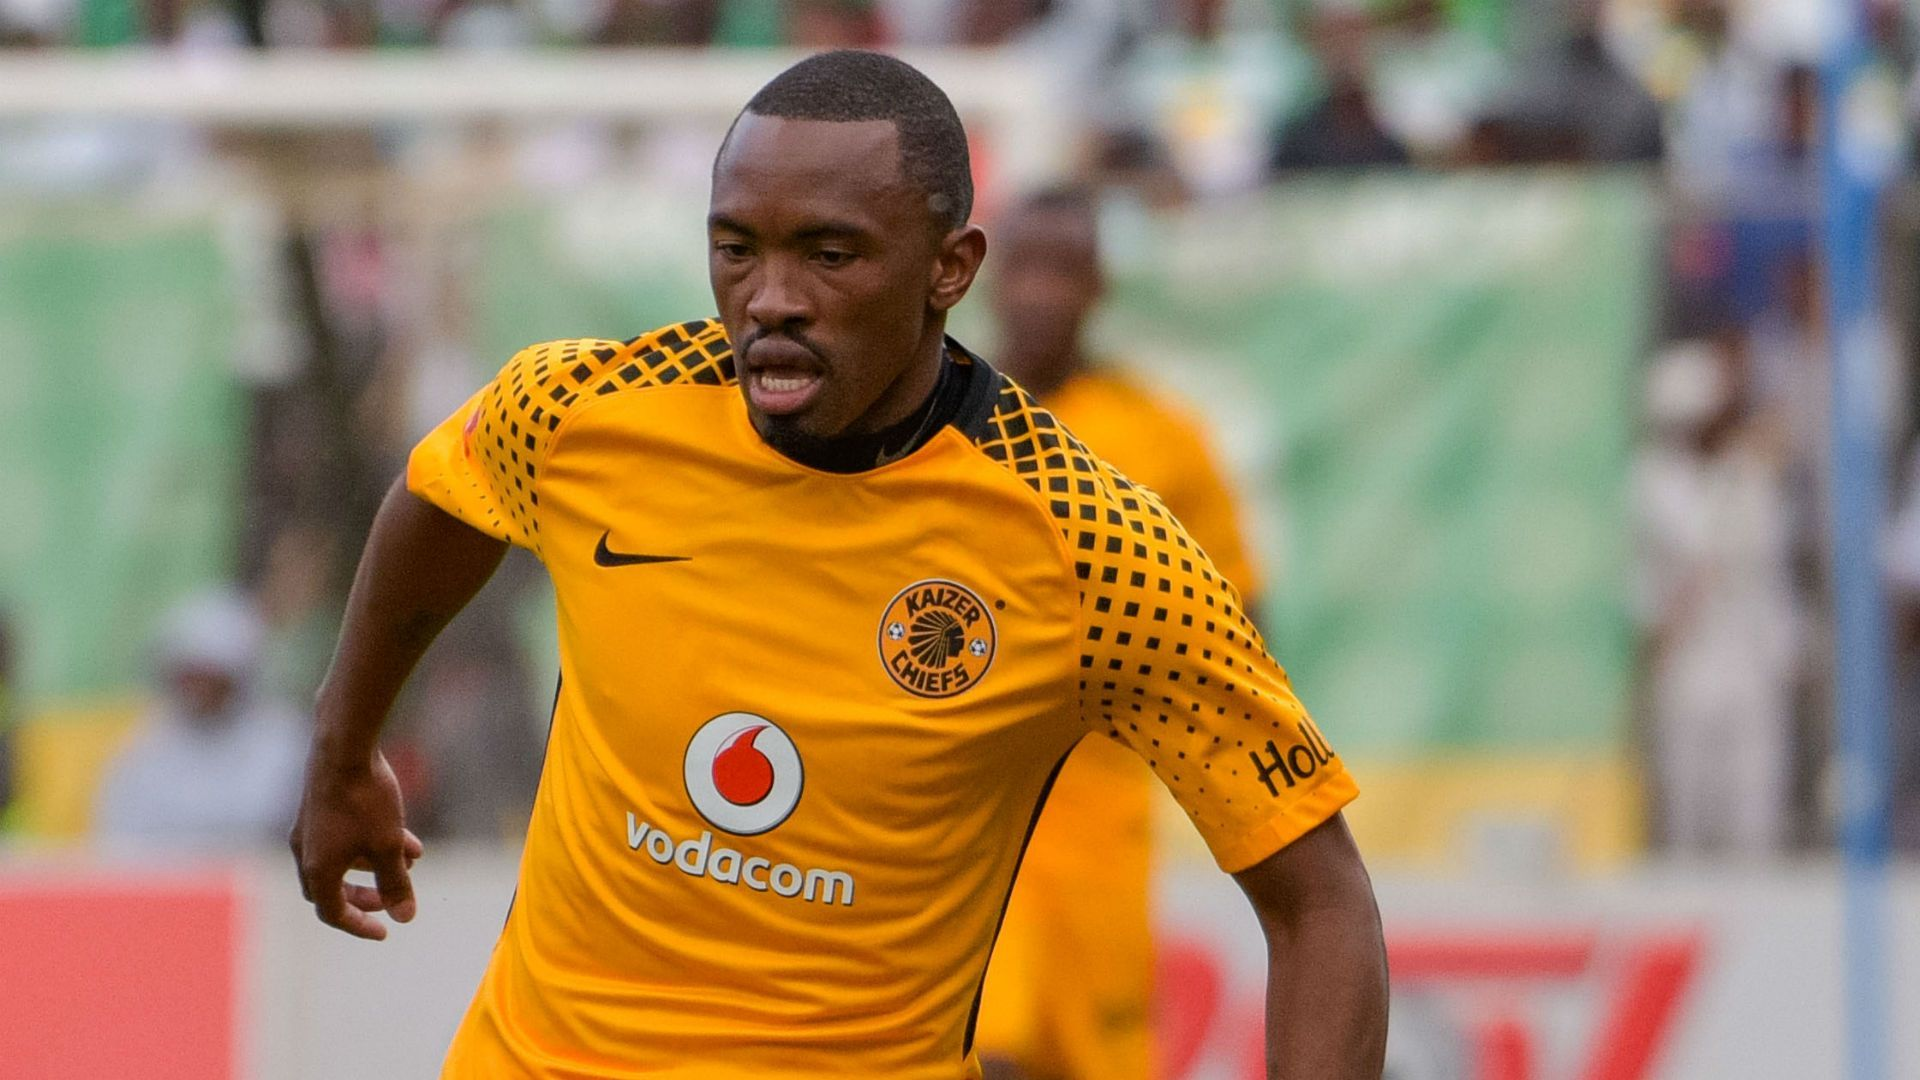 Bloemfontein Celtic 2 4 Kaizer Chiefs Amakhosi Crowned Macufe Cup Champions Kaizer Chiefs Chief Bloemfontein